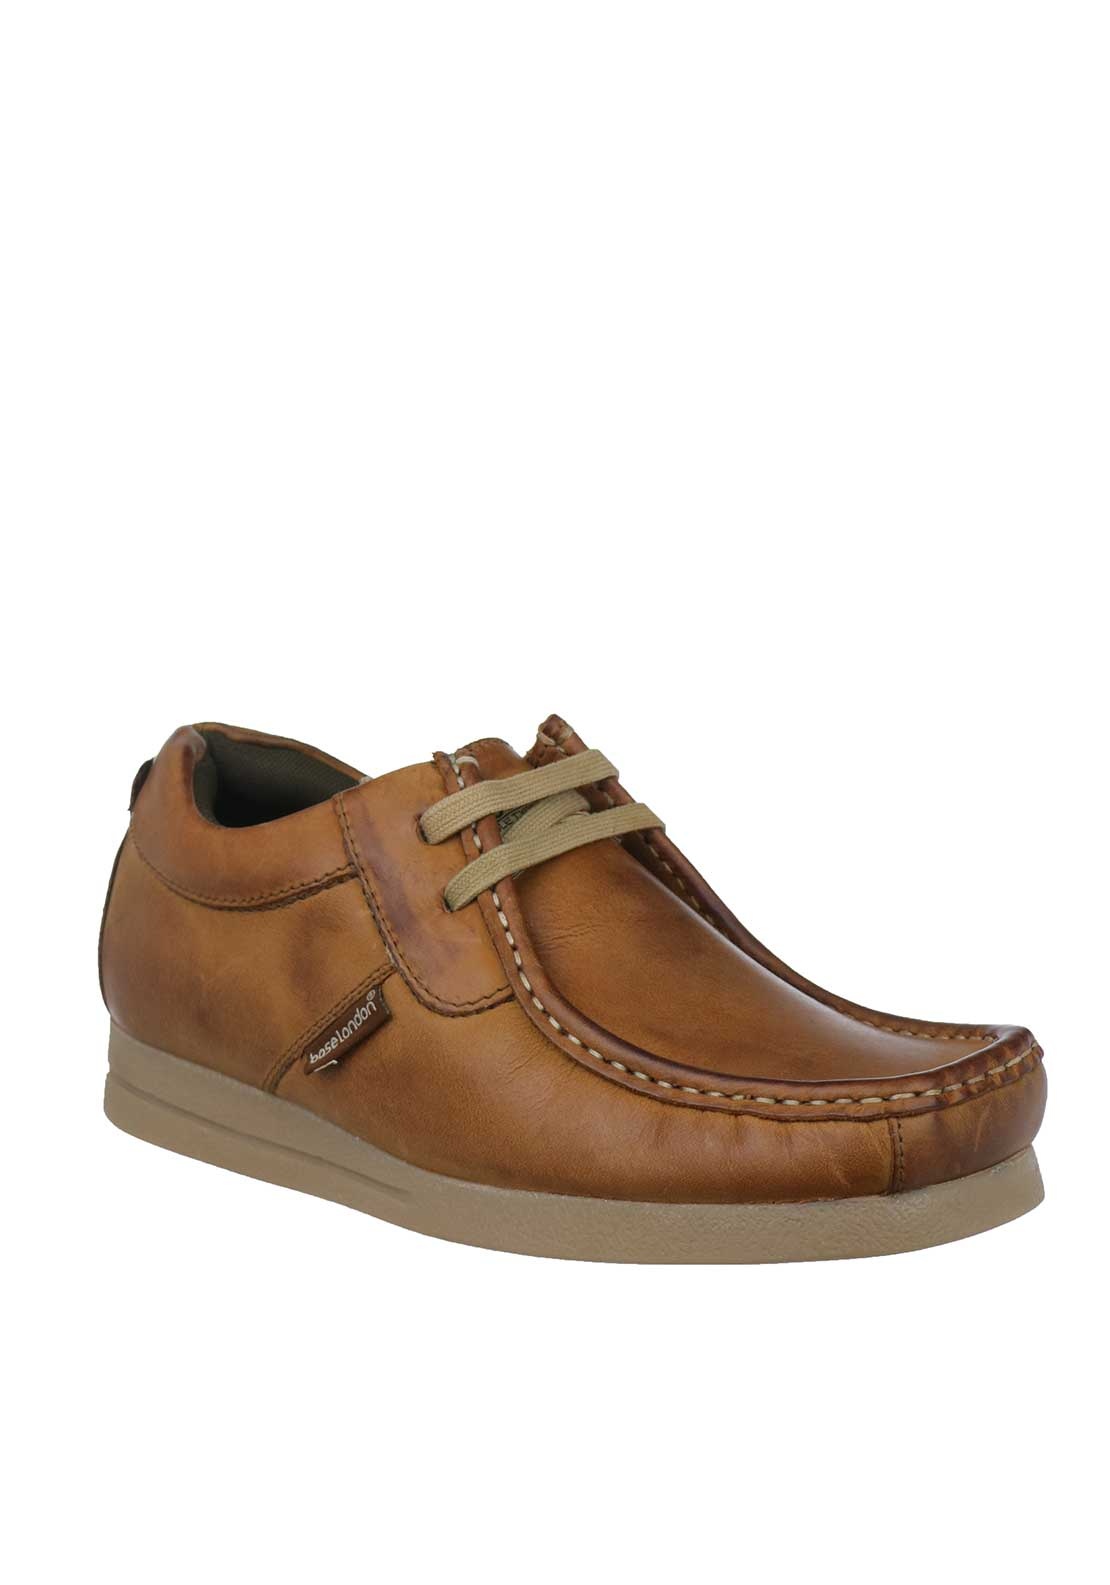 Base London Storm Crazy Leather Shoes, Tan